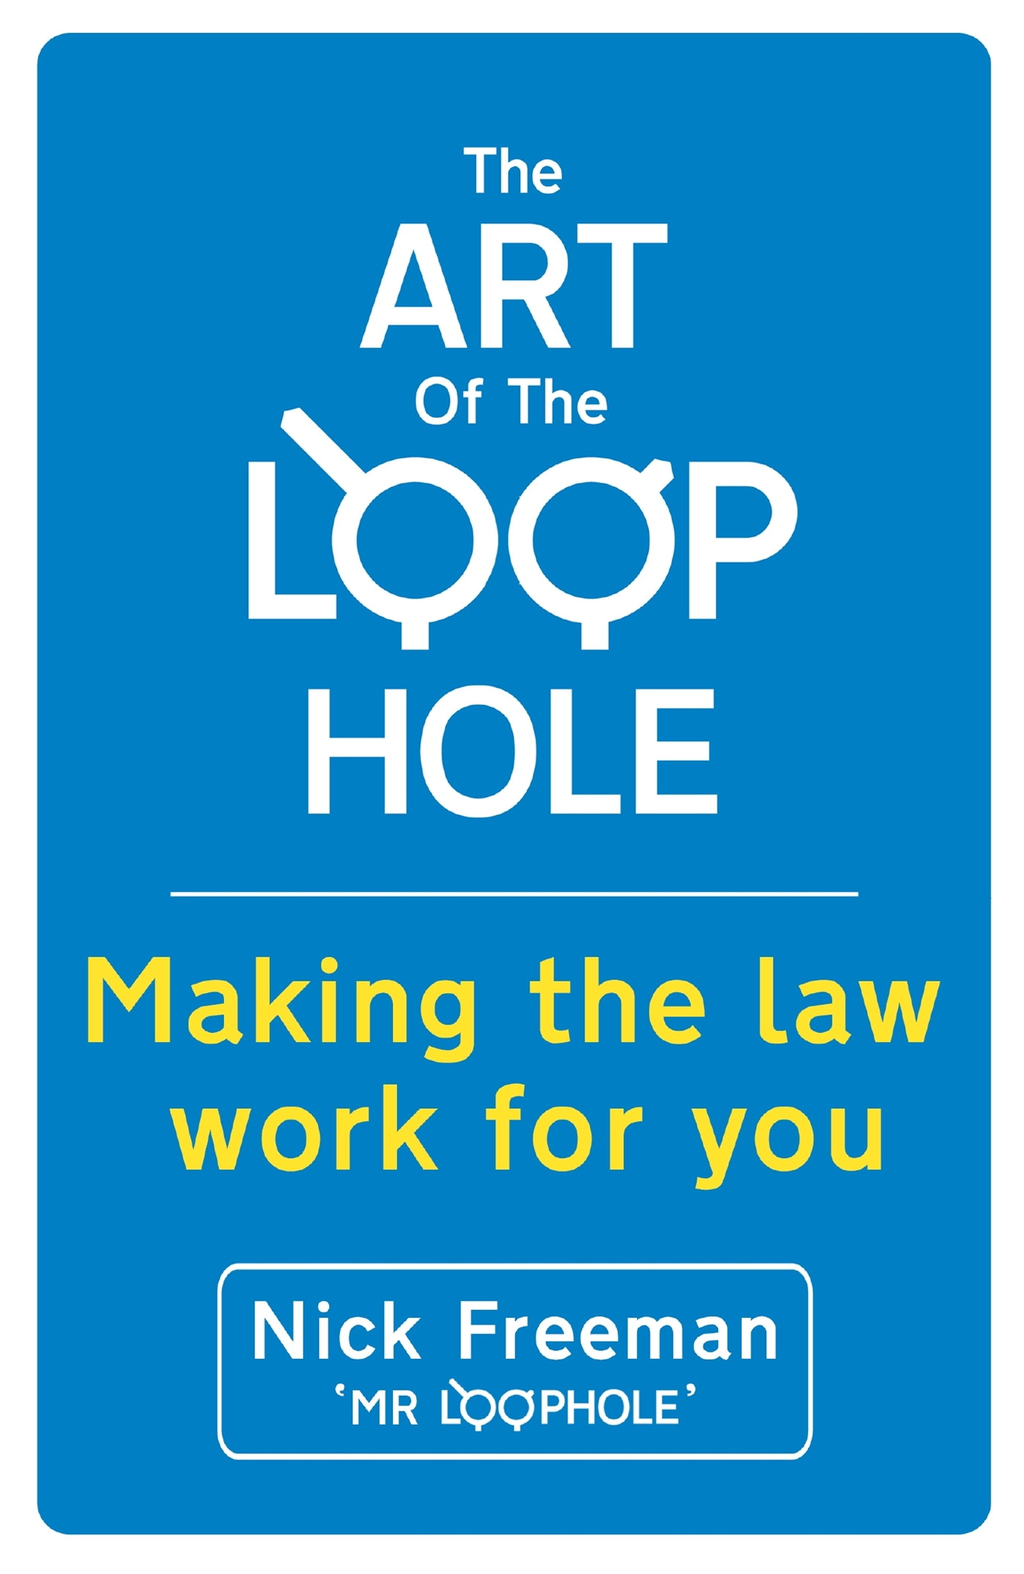 The Art of the Loophole: Making the law work for you Making the law work for you